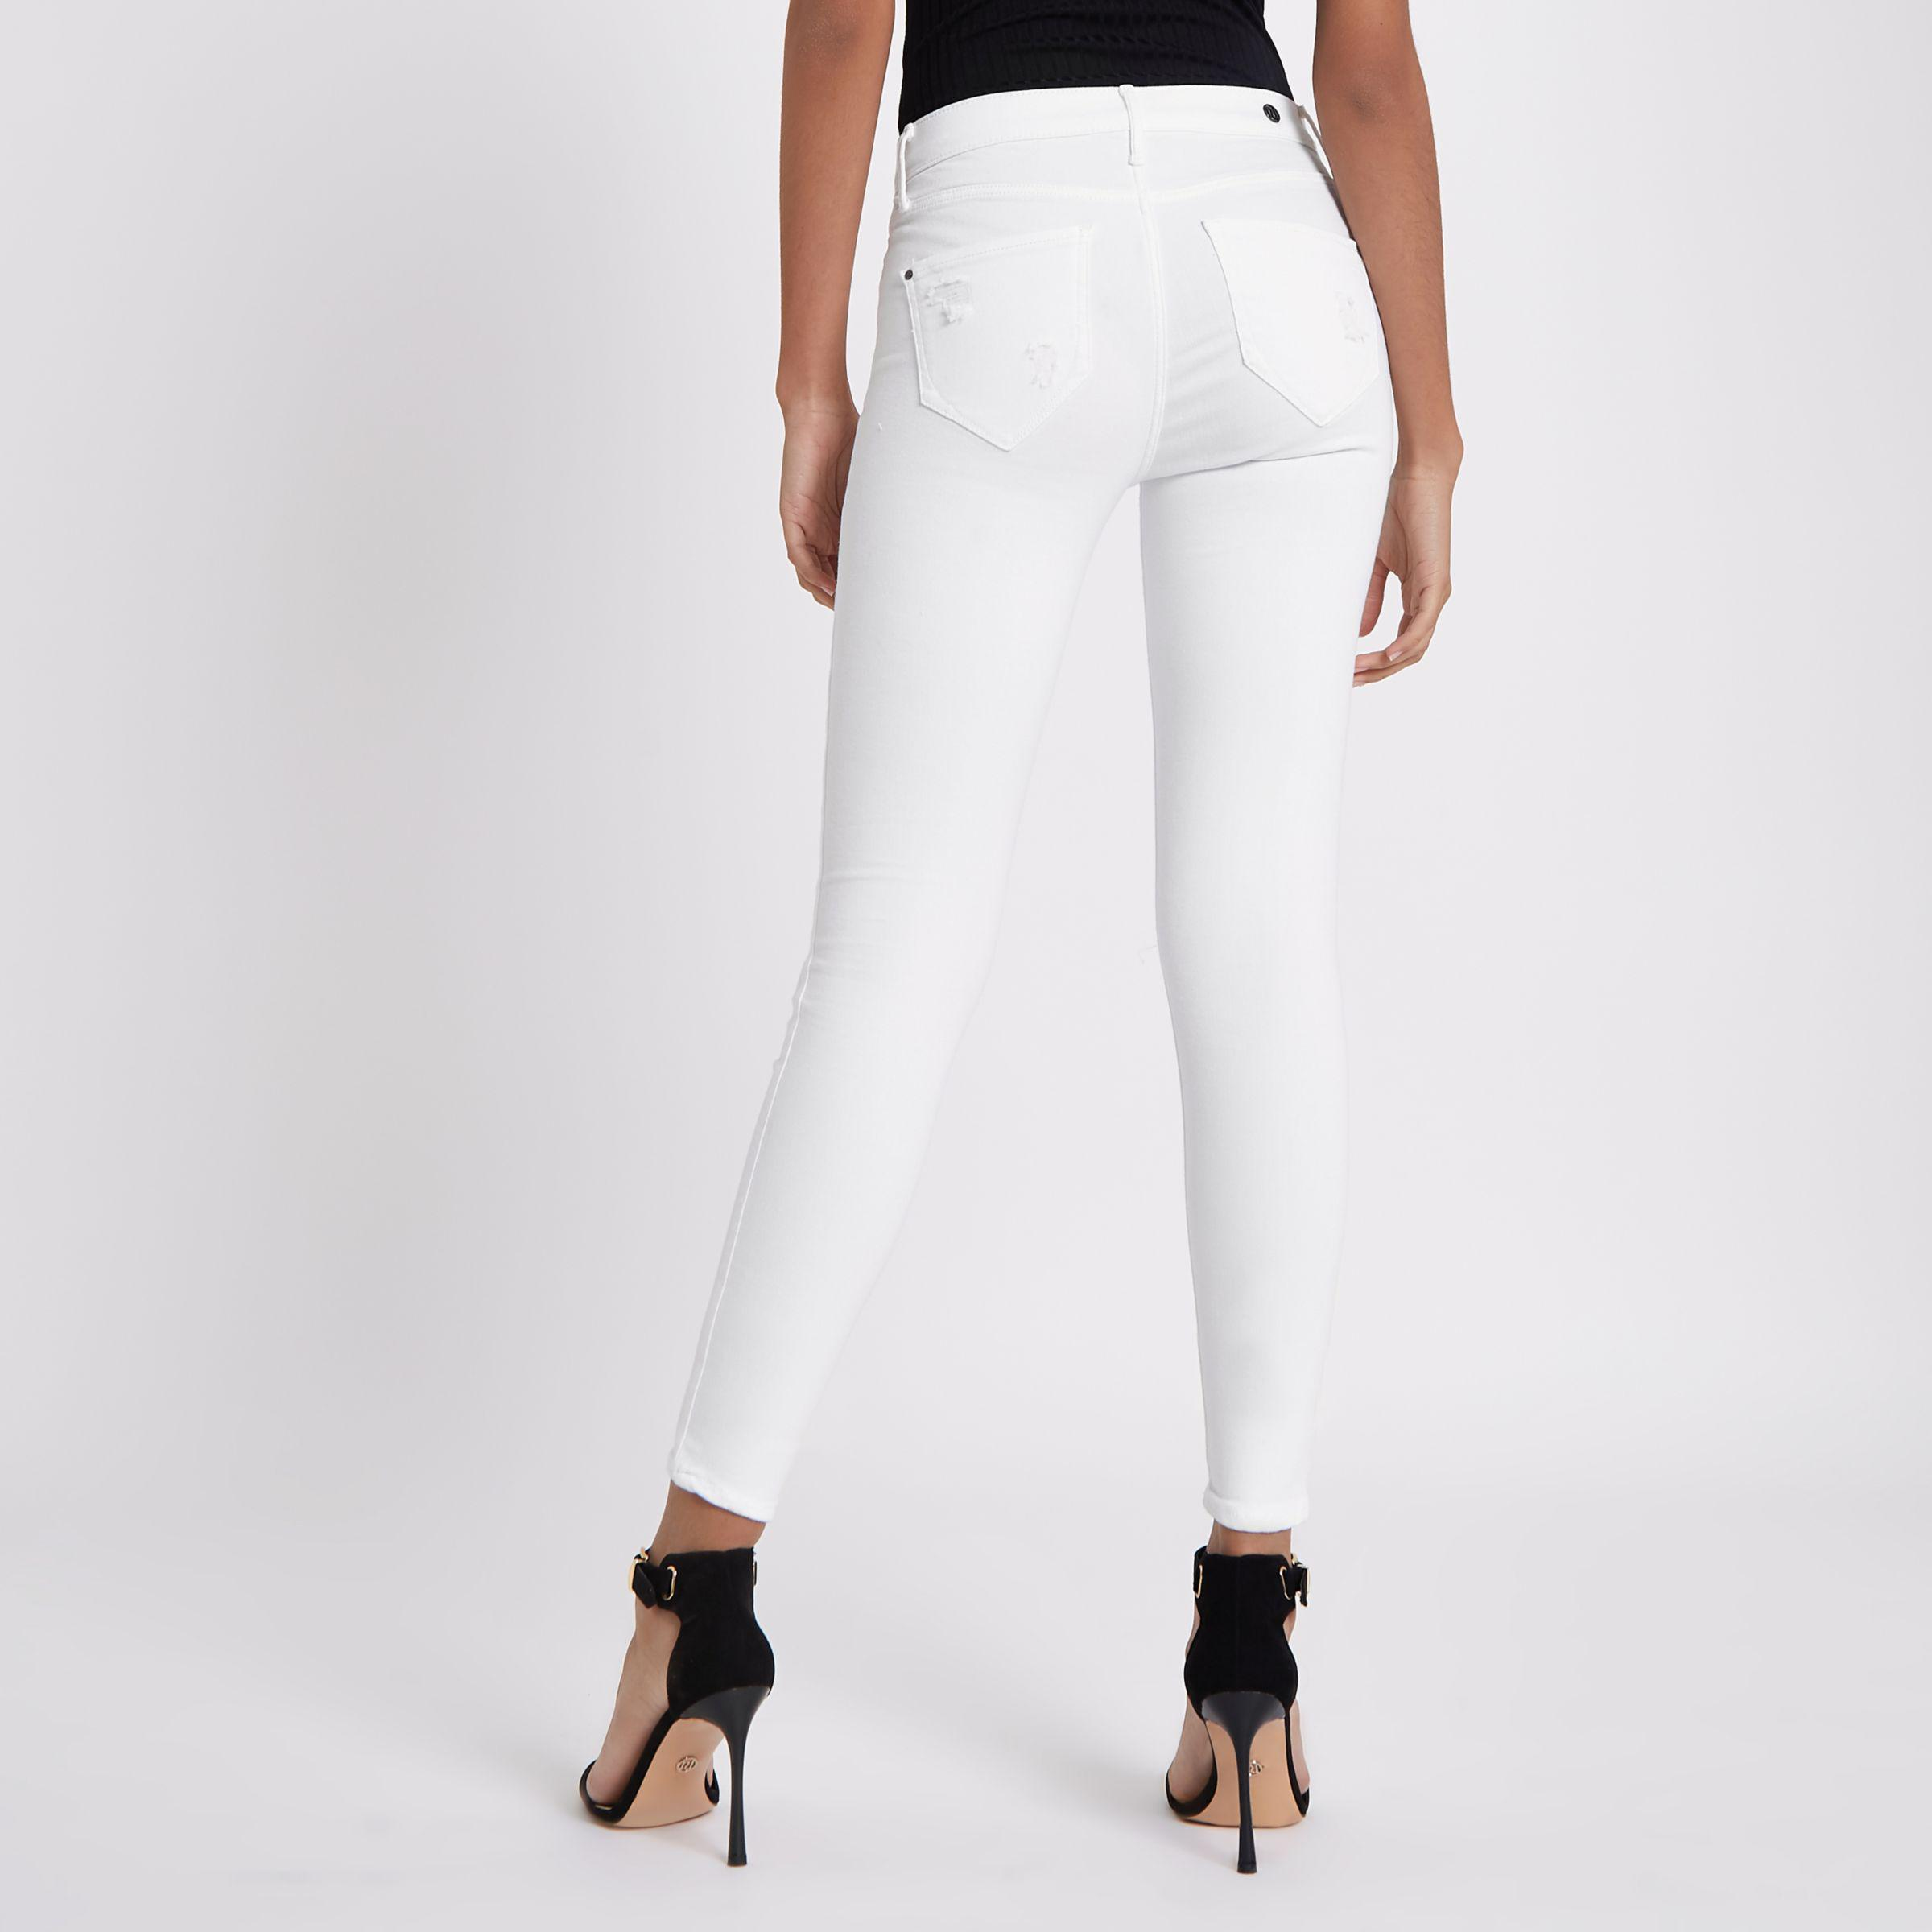 Womens White FTBC charity Molly mid rise jeggings River Island 6yl3zN